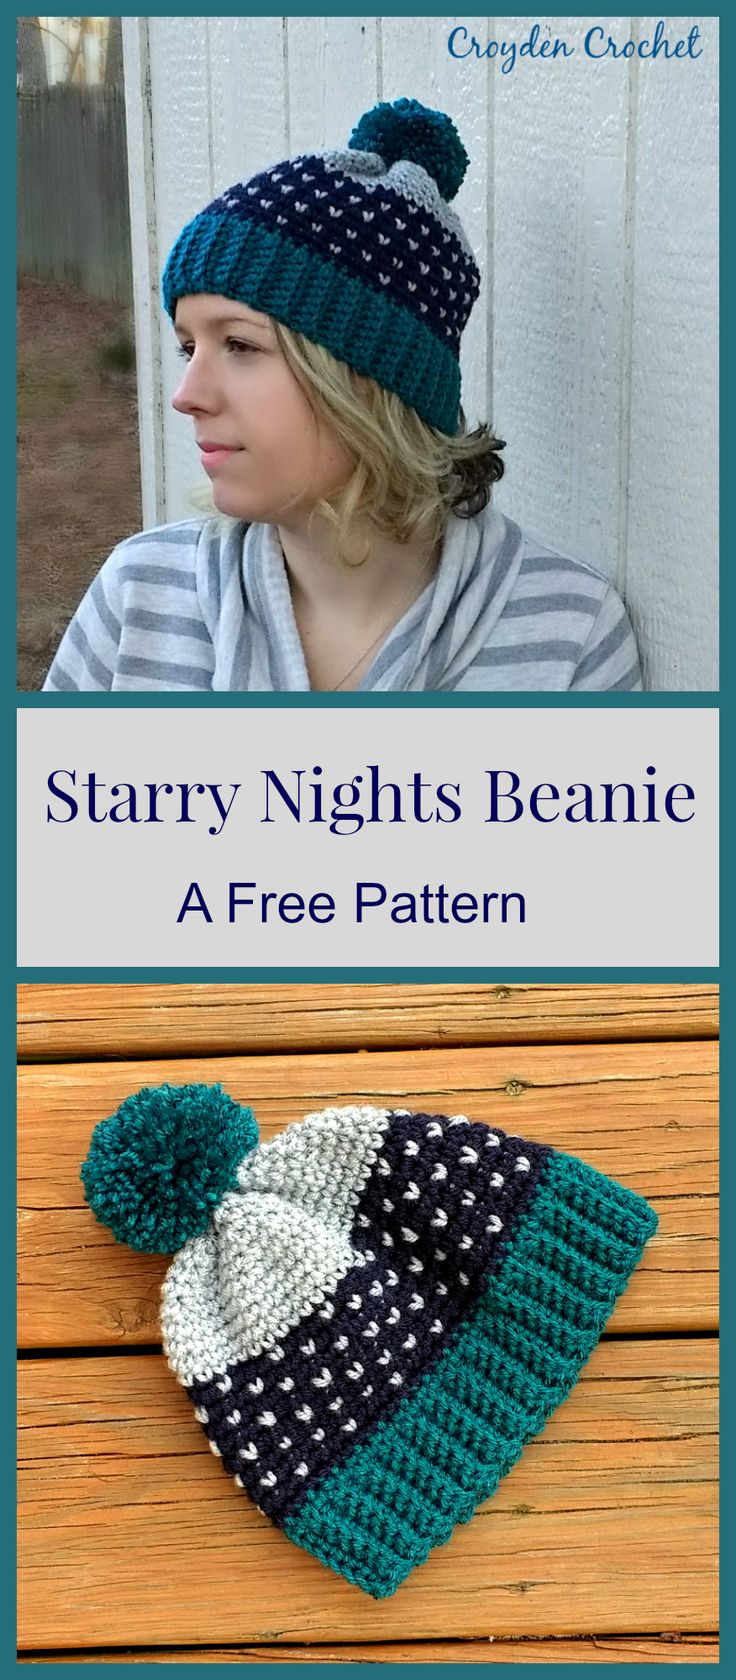 FREE PATTERN - This Starry Nights Beanie pattern is a great beginner friendly fair isle crochet pattern!